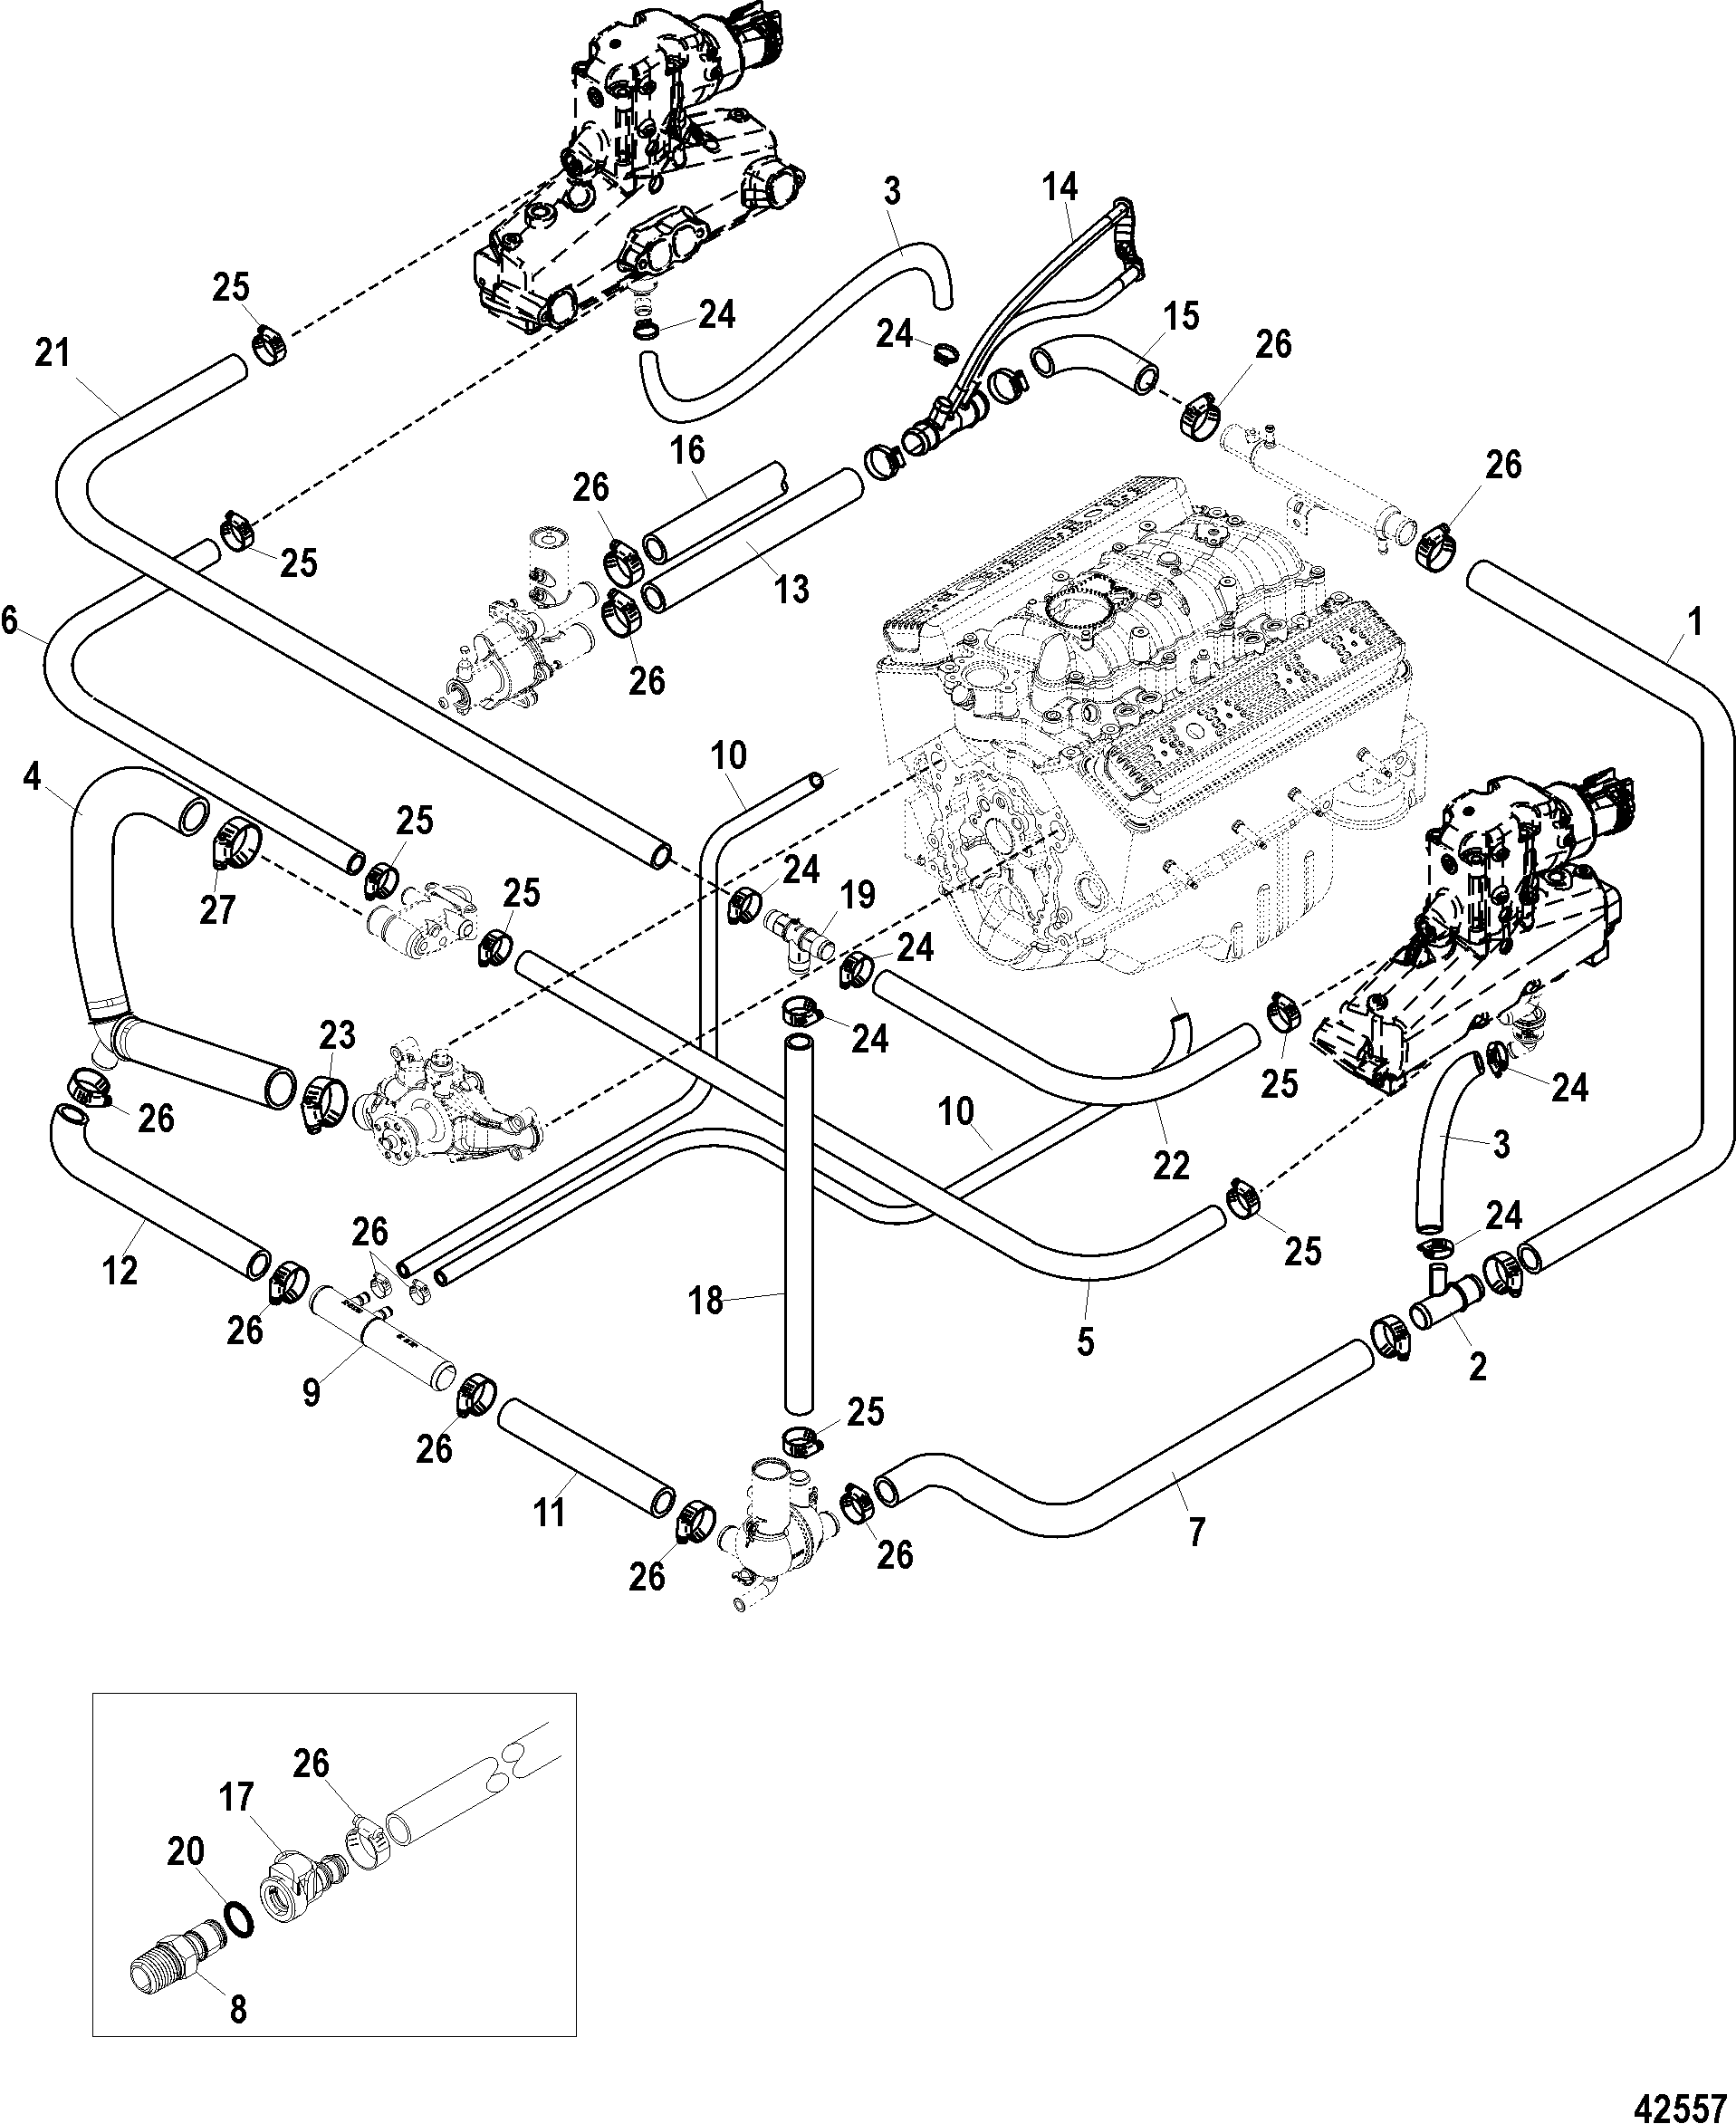 hight resolution of standard cooling system